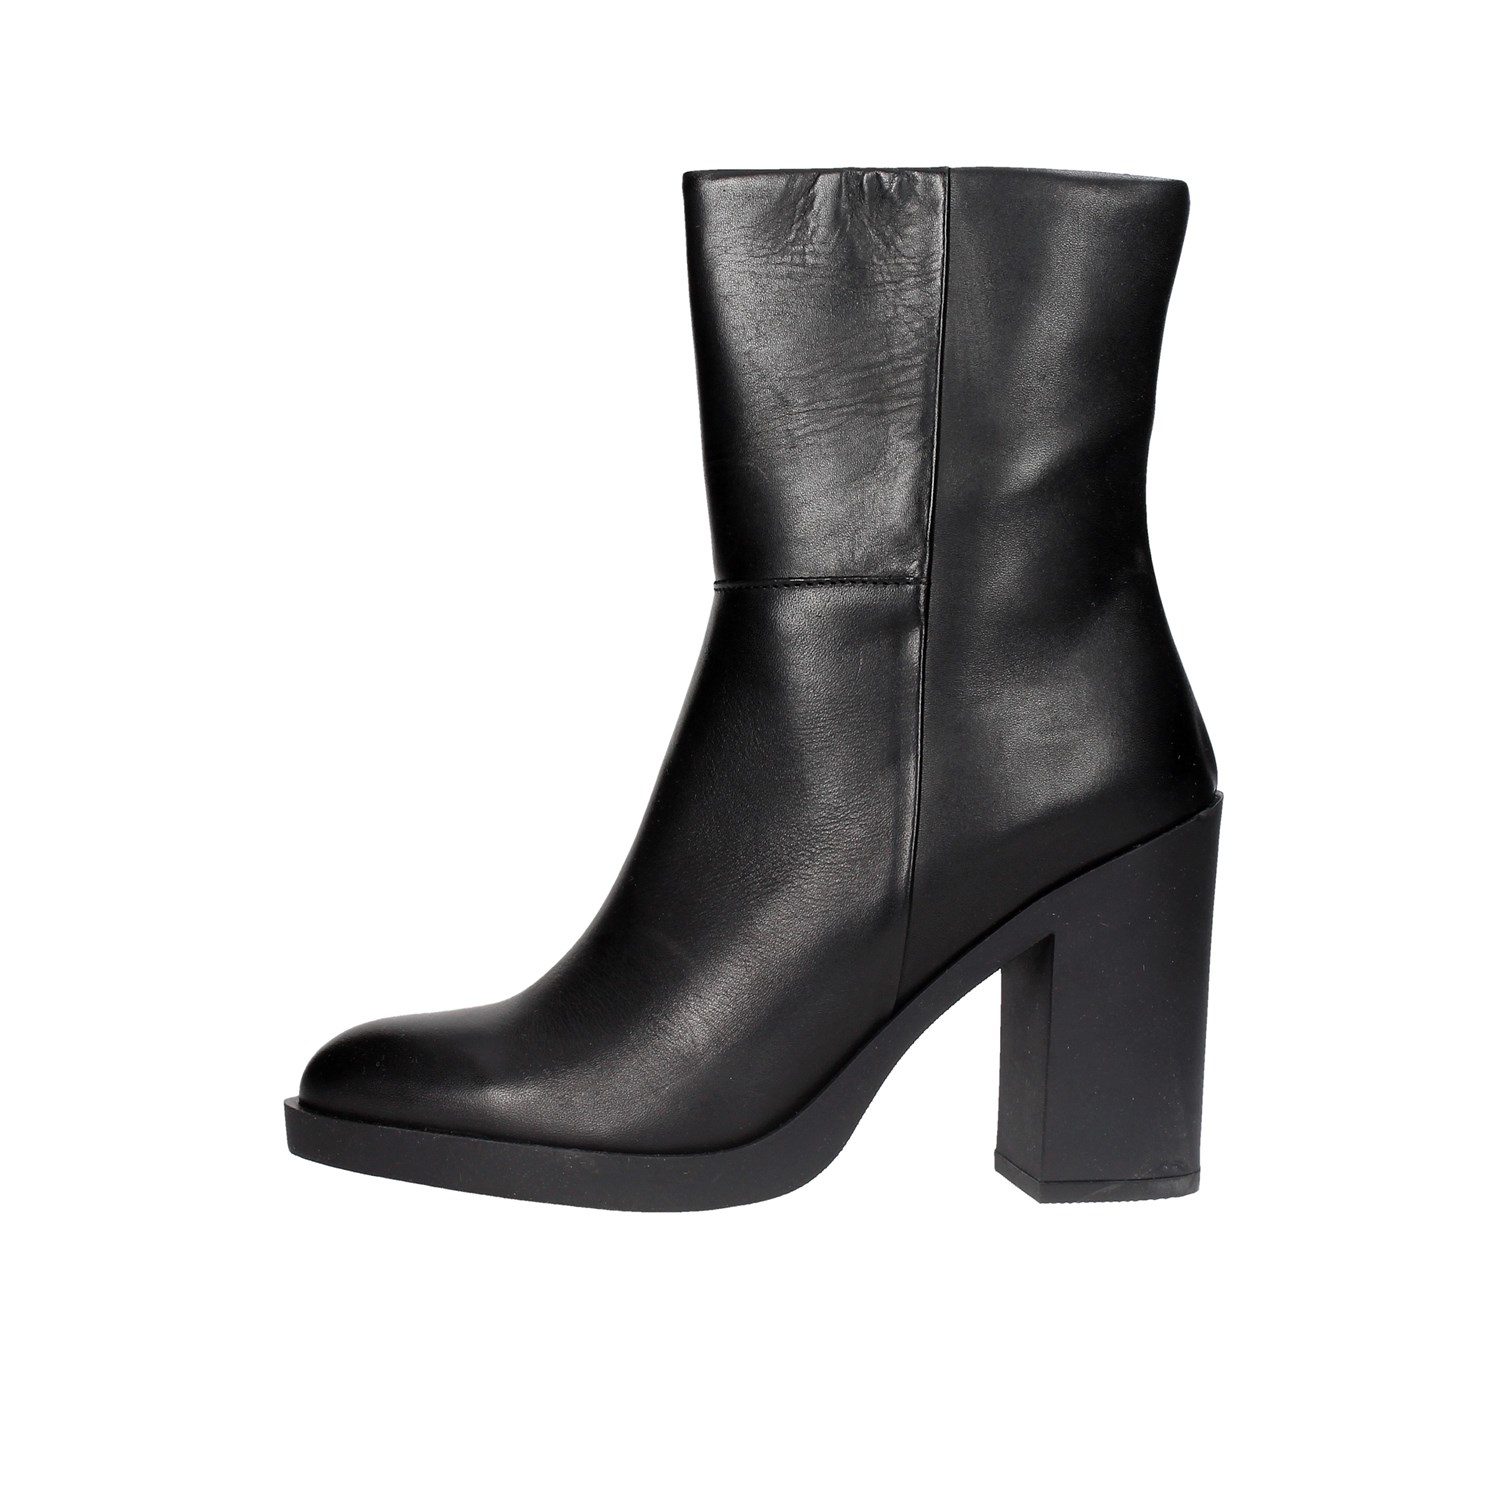 Ankle Stiefel 92P4 With Heels Damens Frau 92P4 Stiefel Fall/Winter 3d7c47